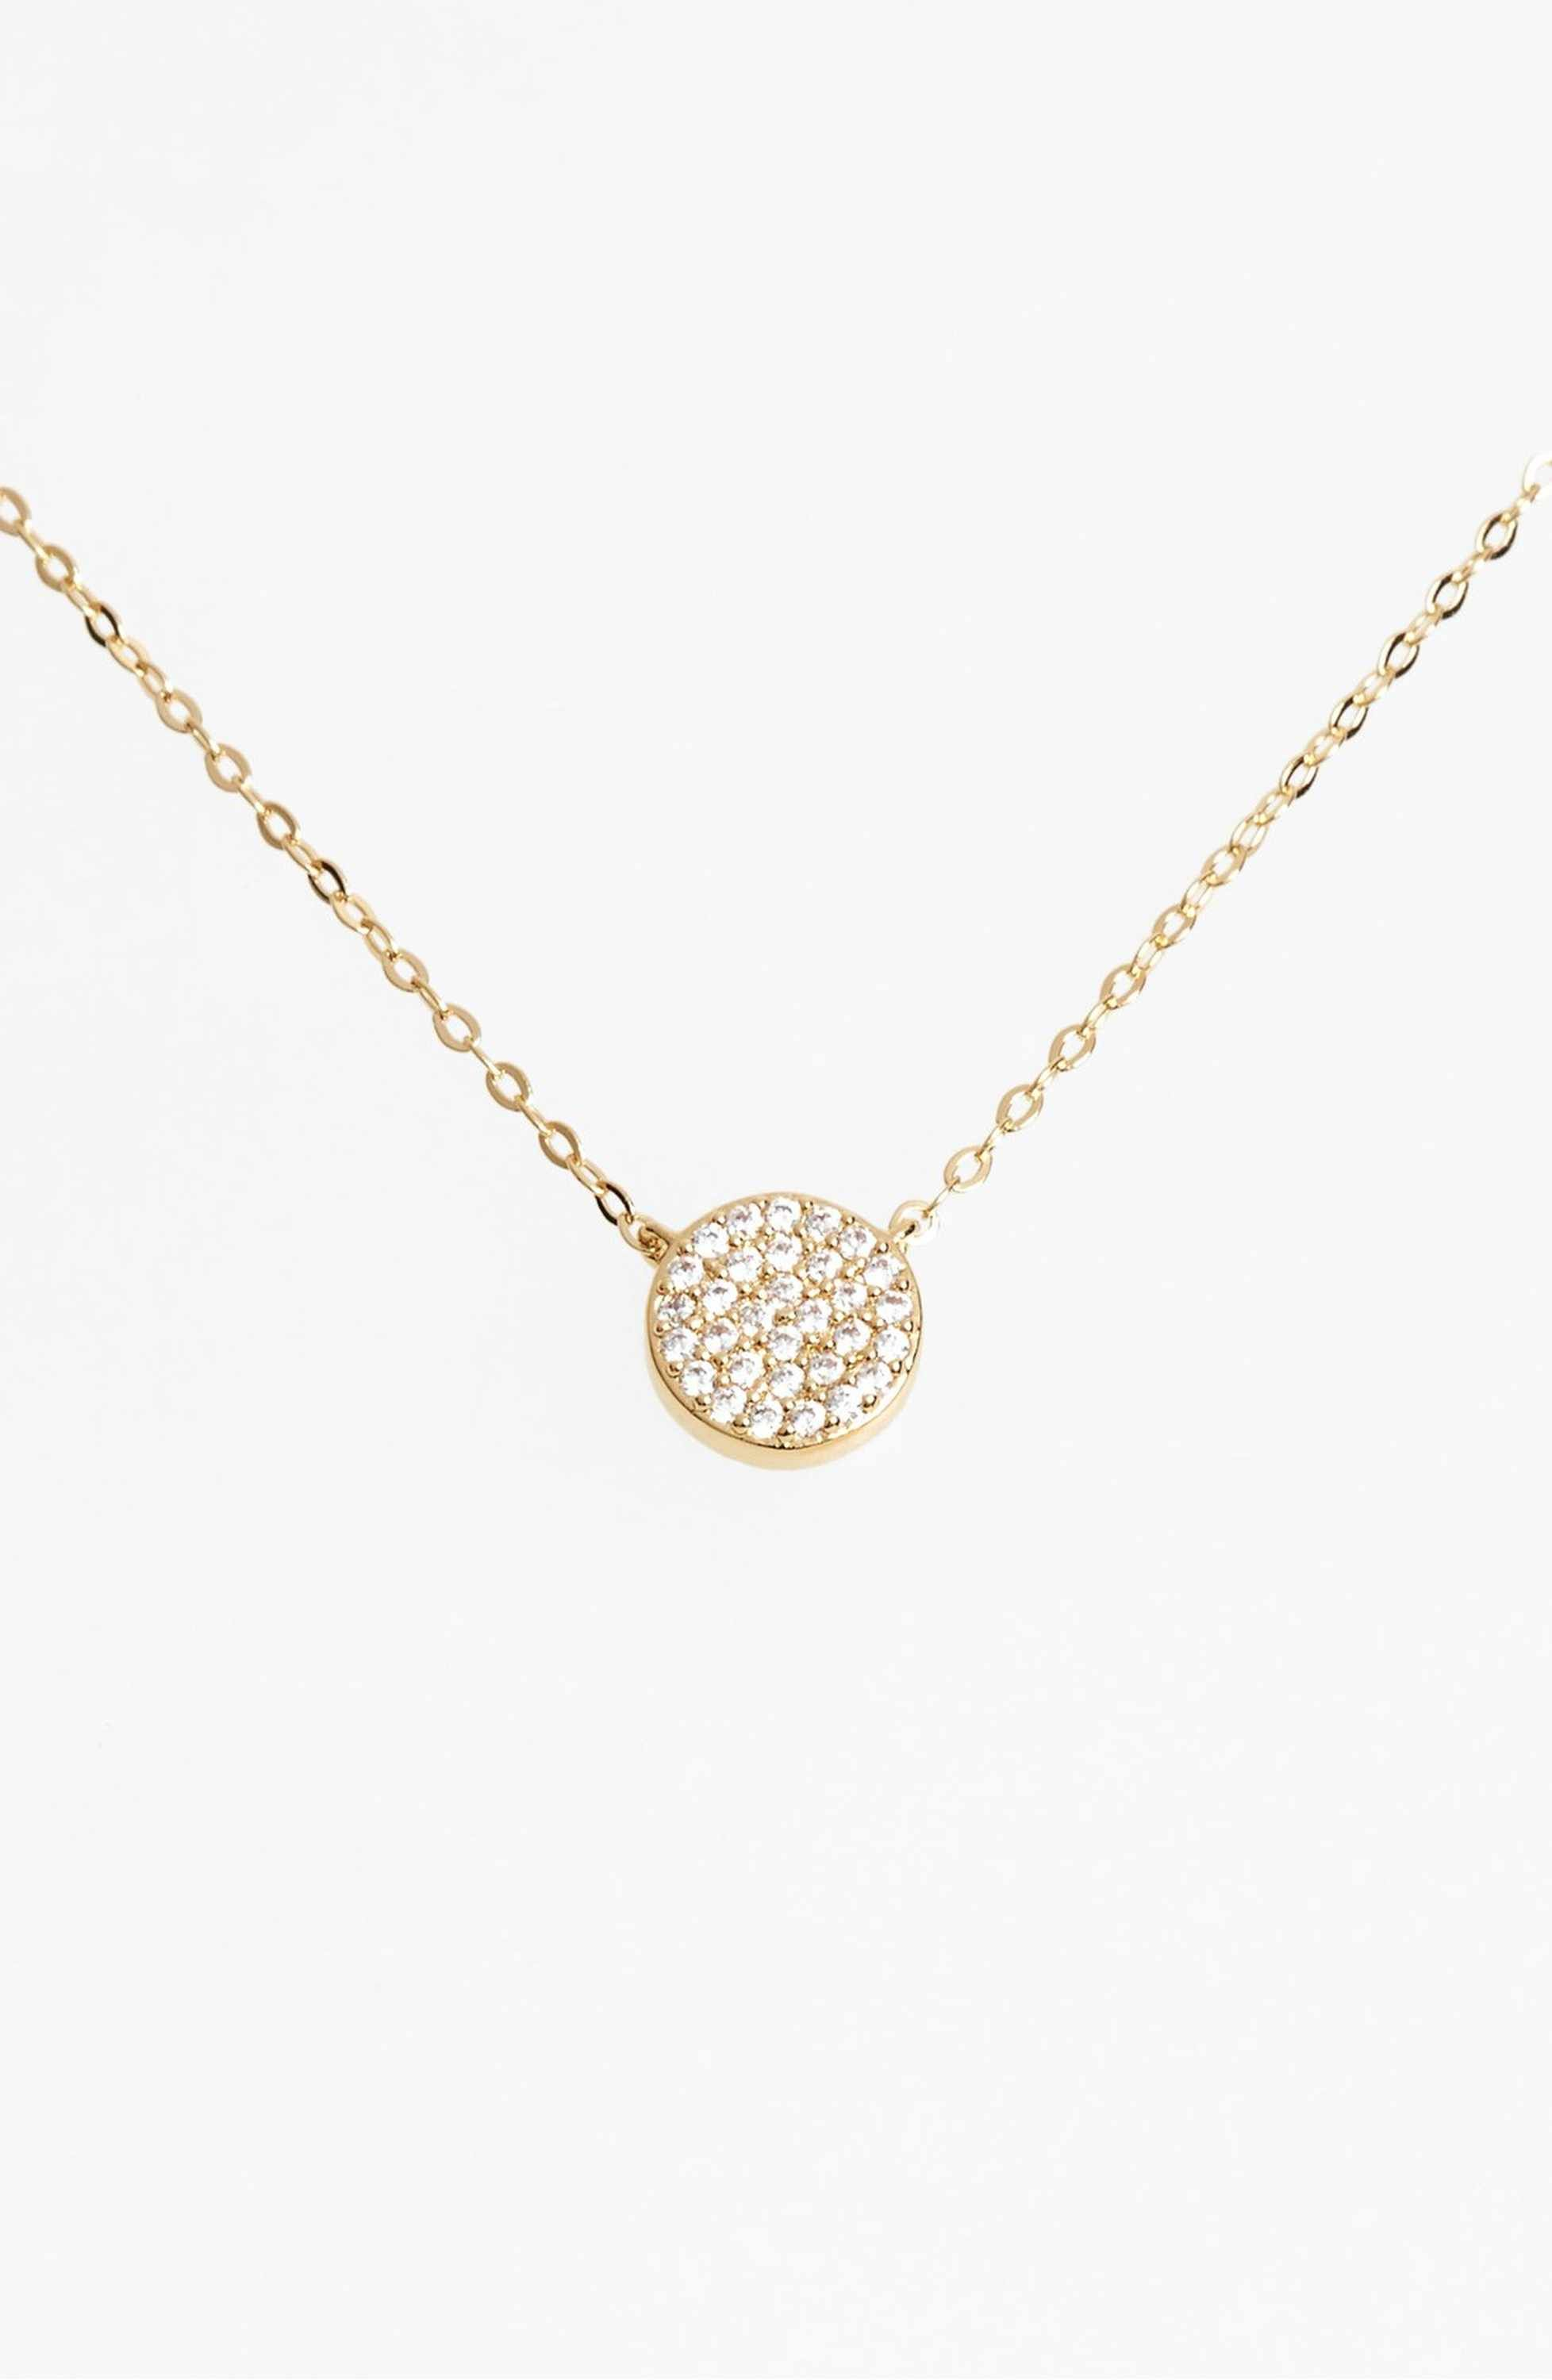 Main image nadri ugeou small pendant necklace favorites